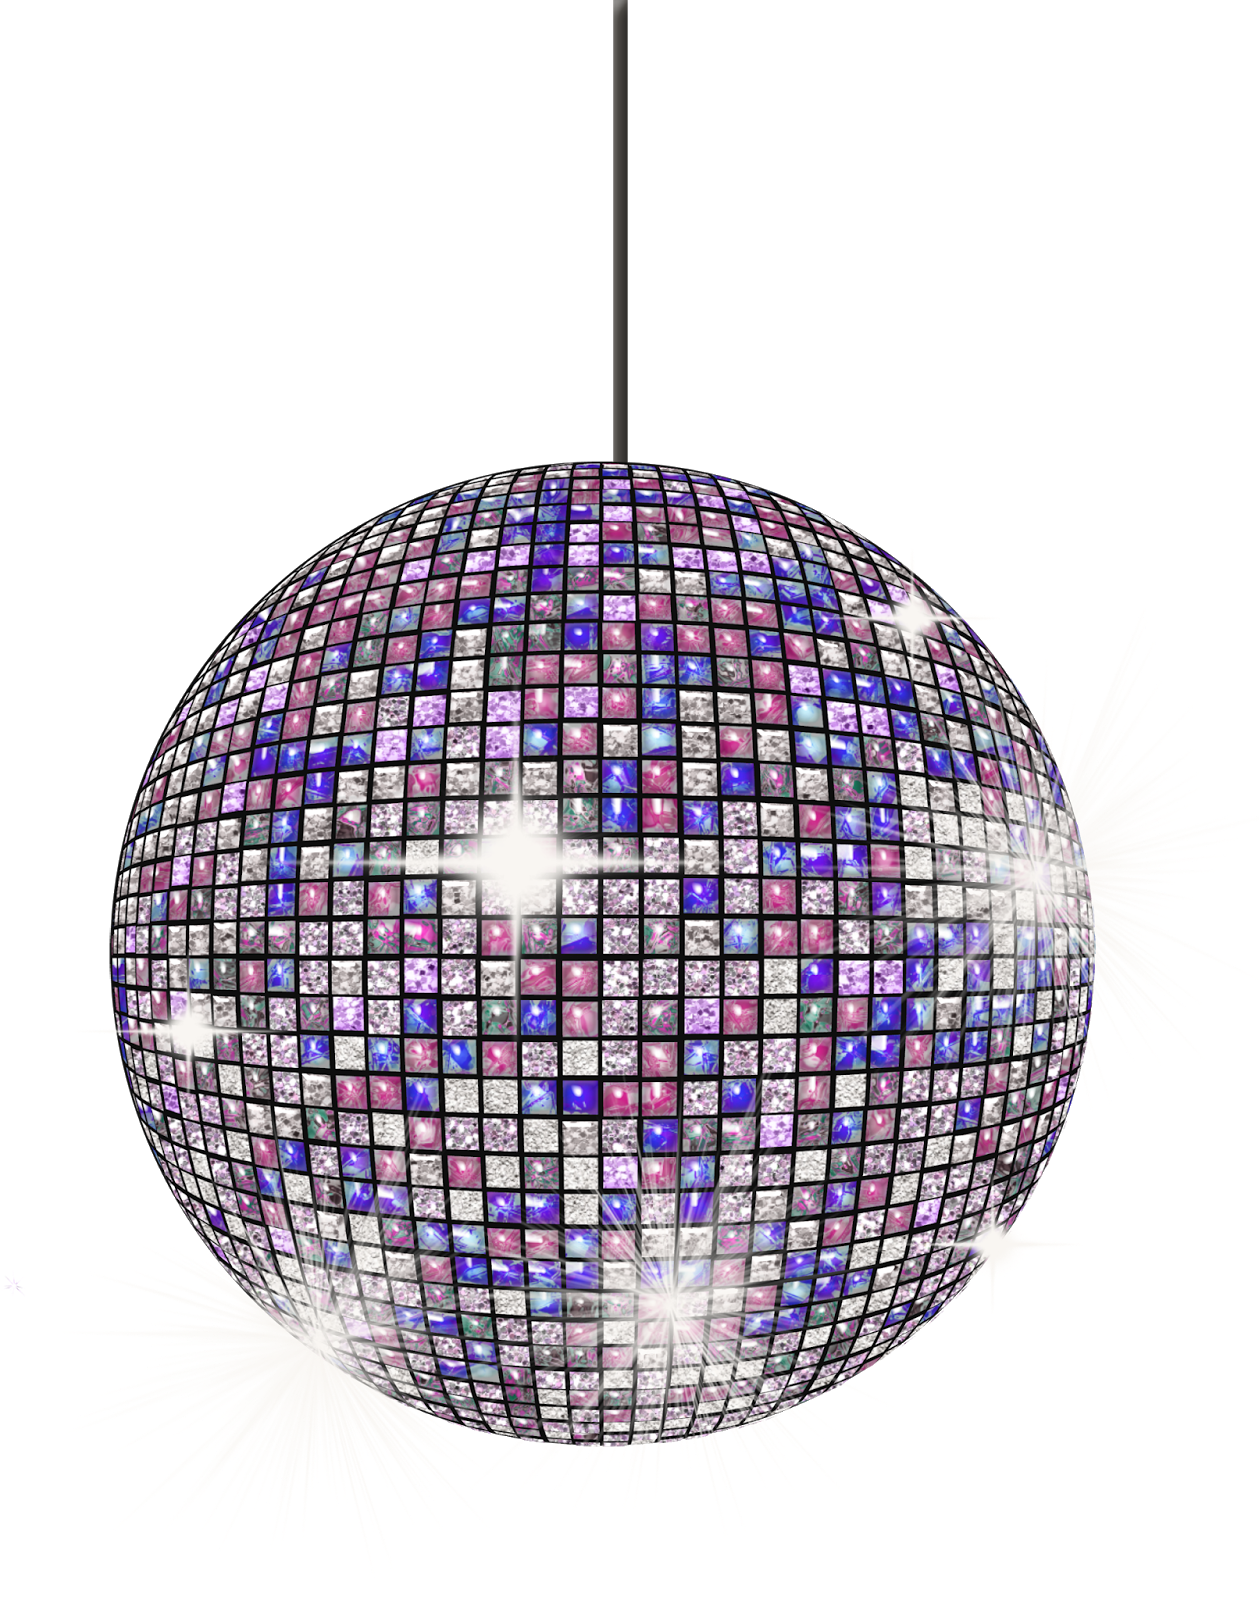 Png Transparent Background Disco Ball Hd image #27263